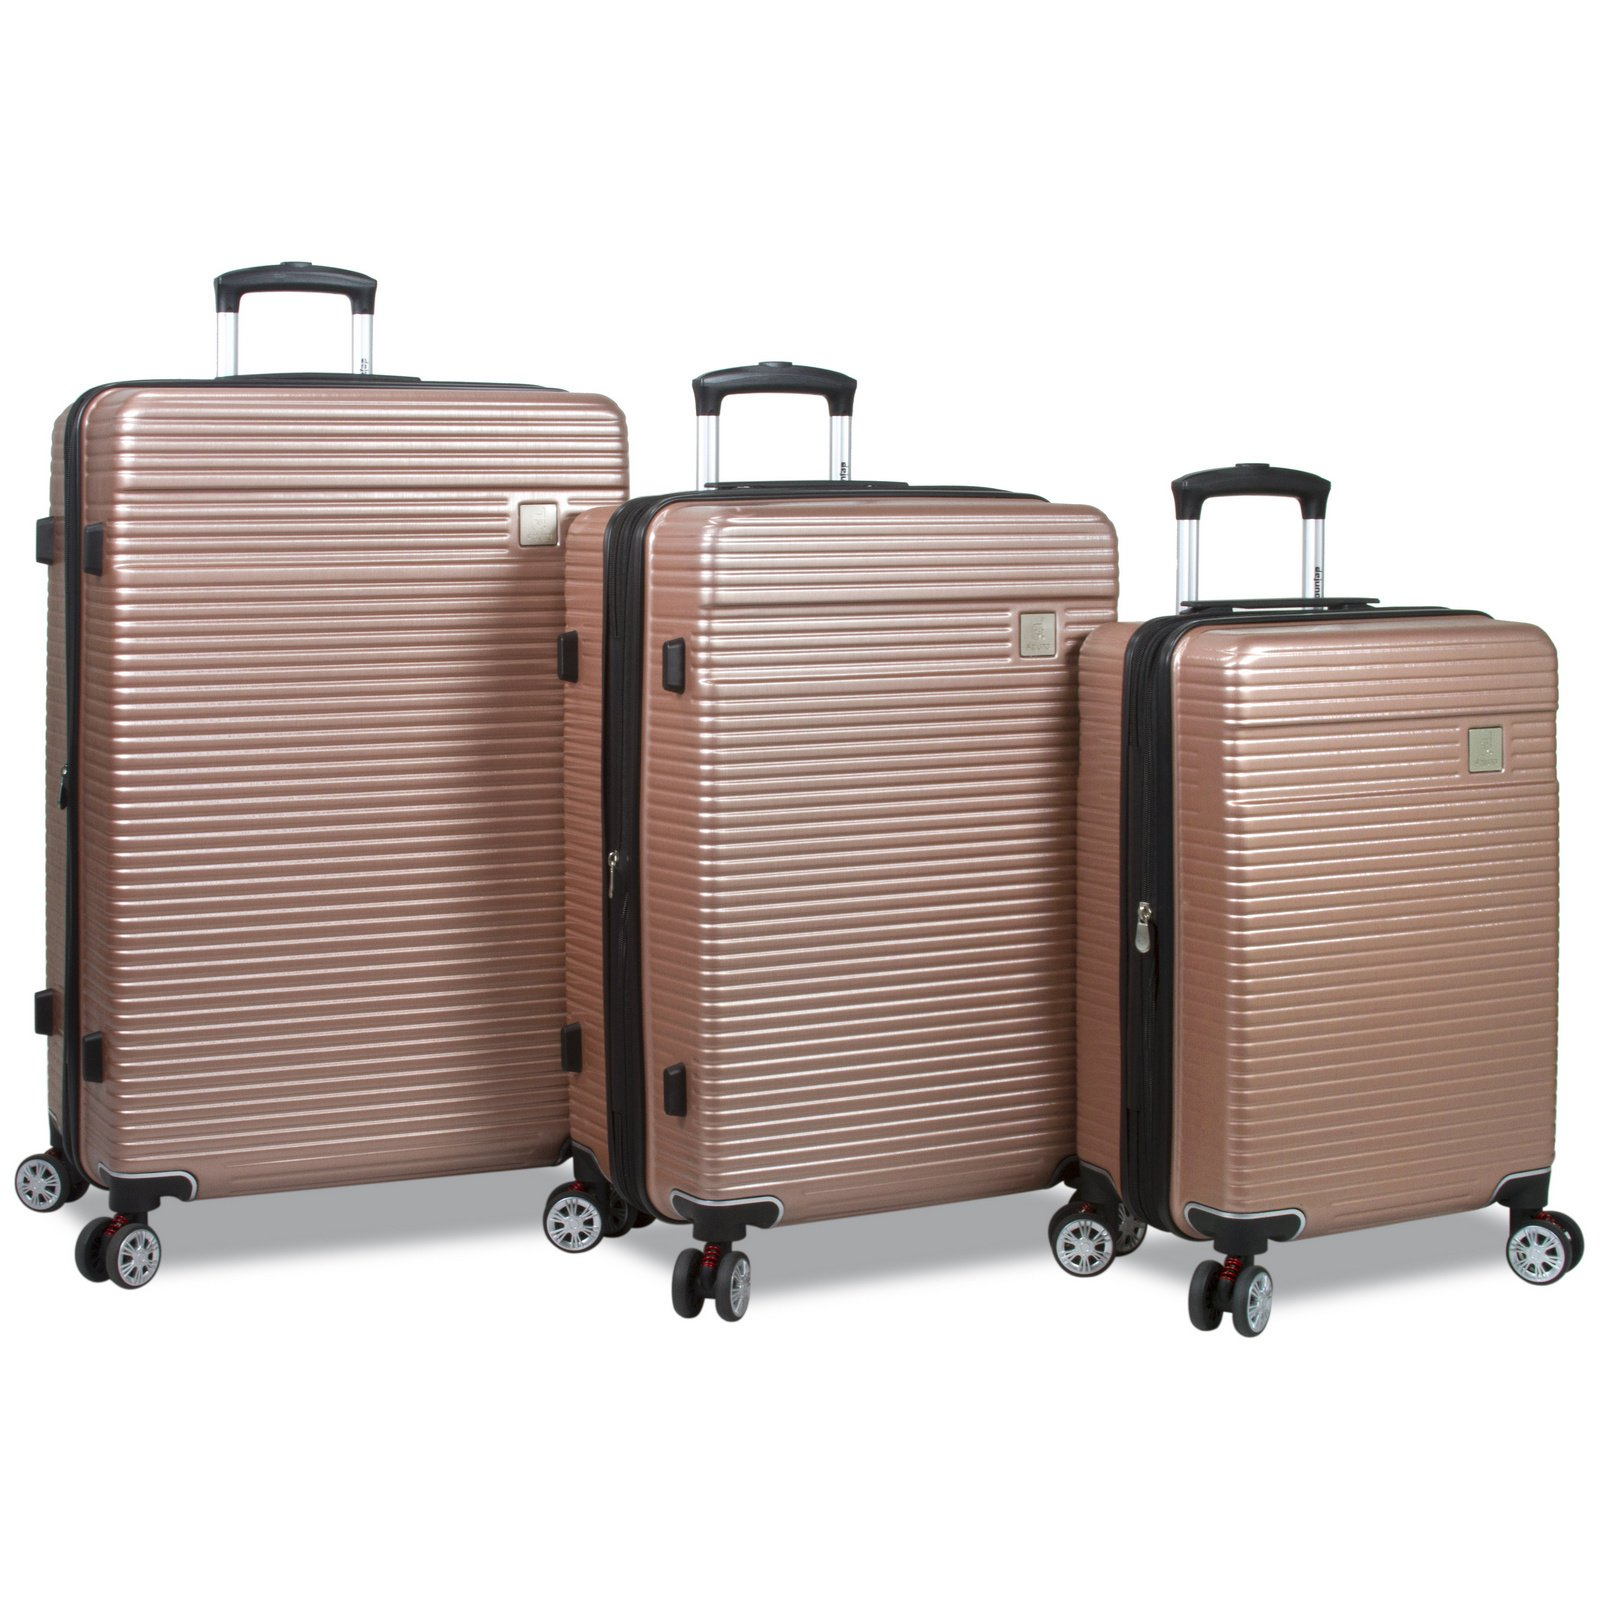 Dejuno Ashford 3-pc Hardside Spinner TSA Combination Lock Luggage Set-Rosegold, Rose Gold by Dejuno